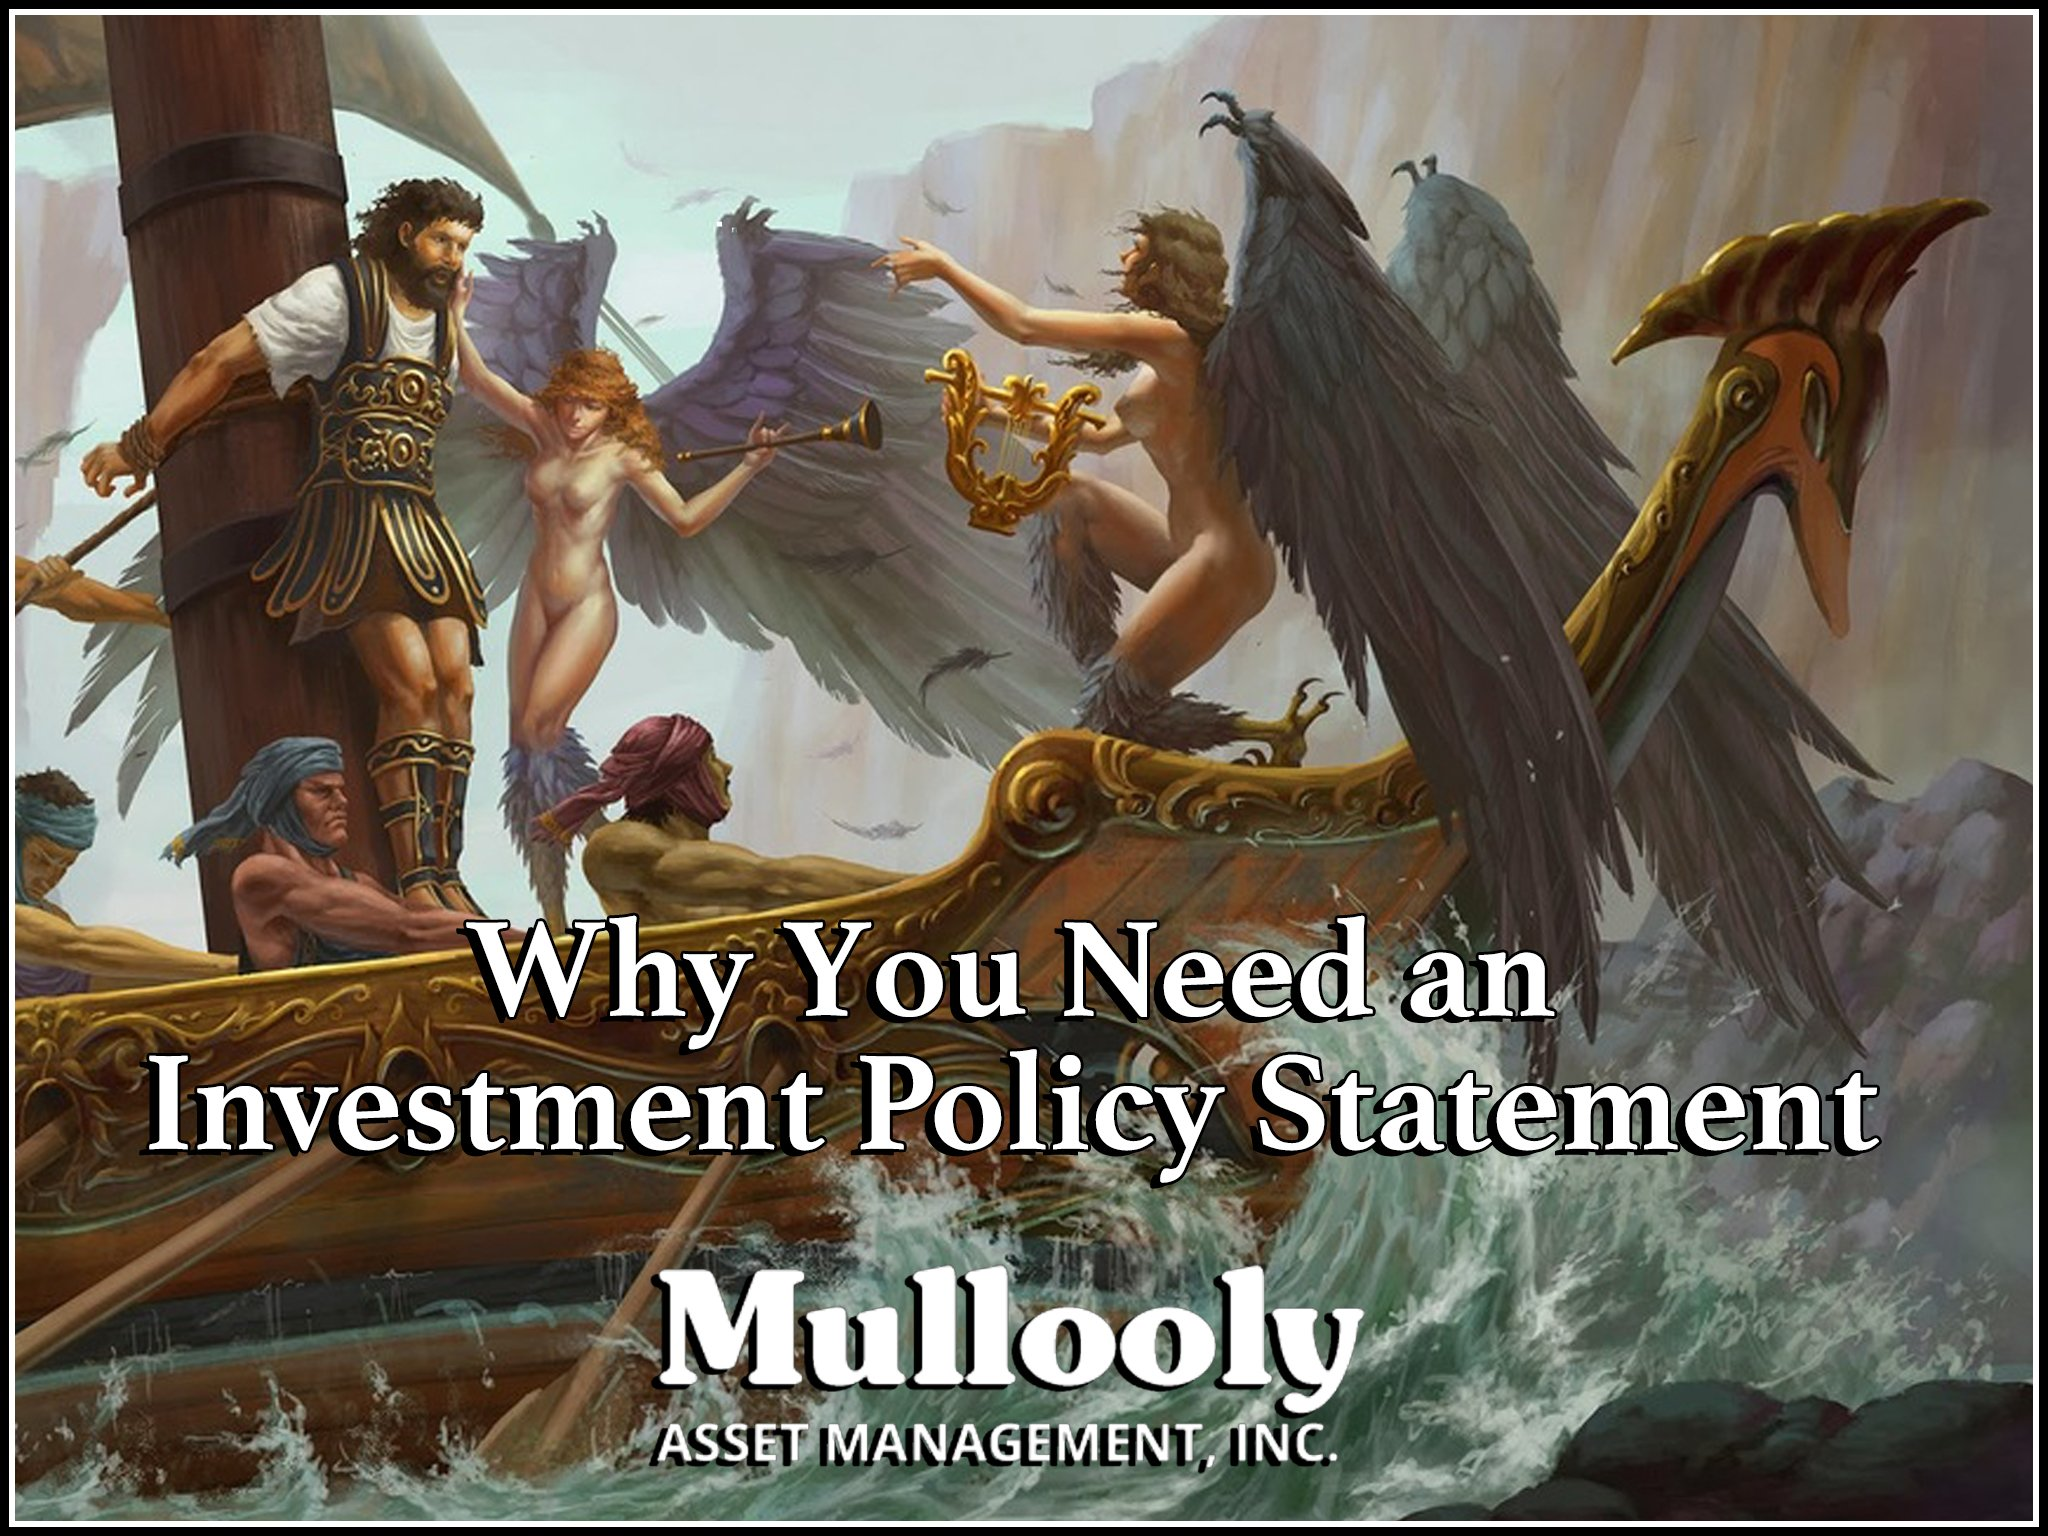 Why You Need an Investment Policy Statement